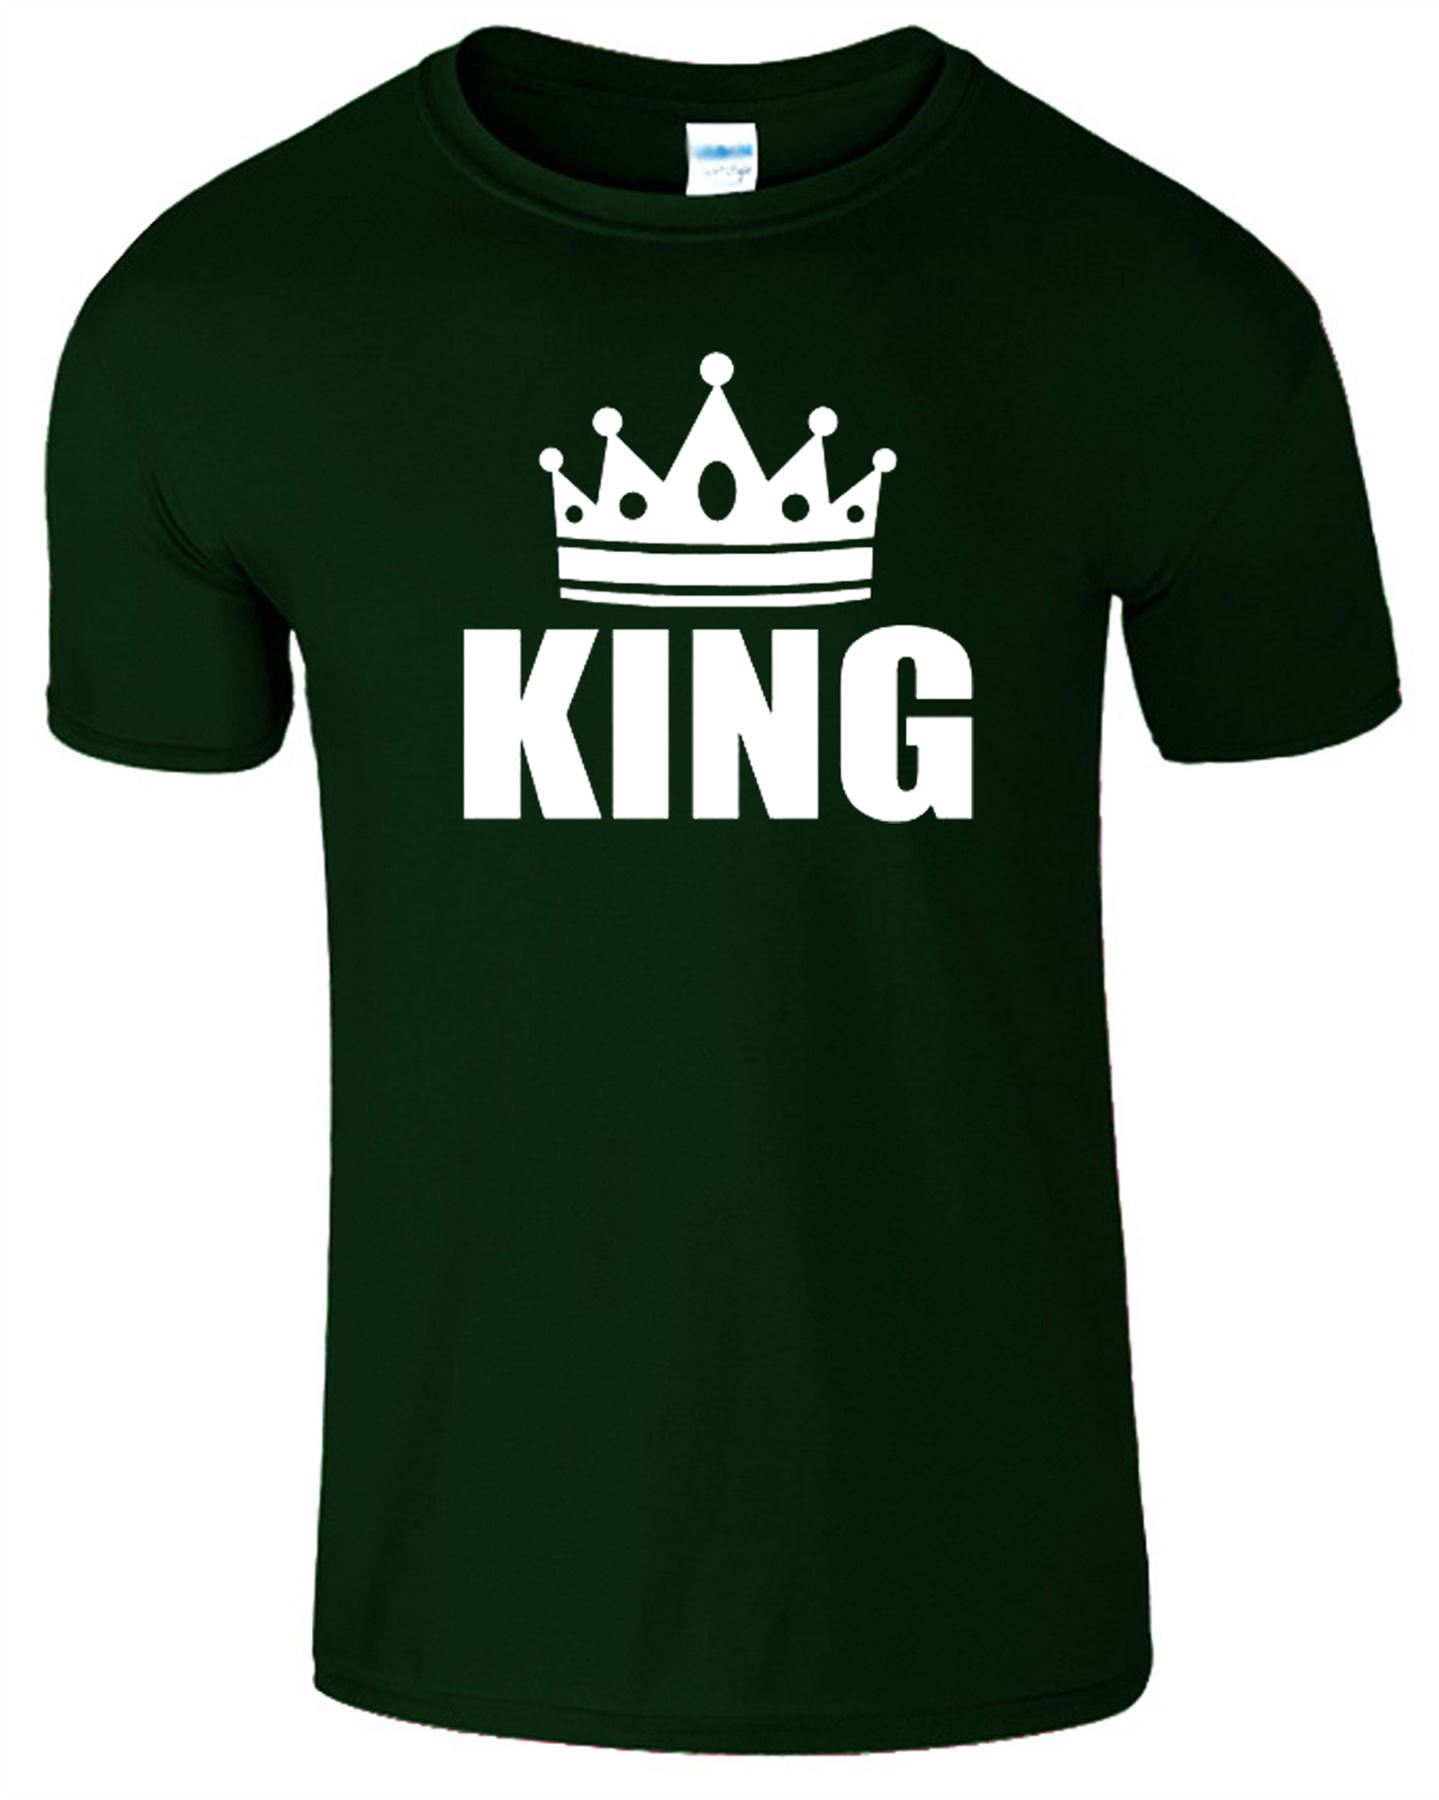 King and queen t shirt mens womens crown logo romantic for Logo t shirts online